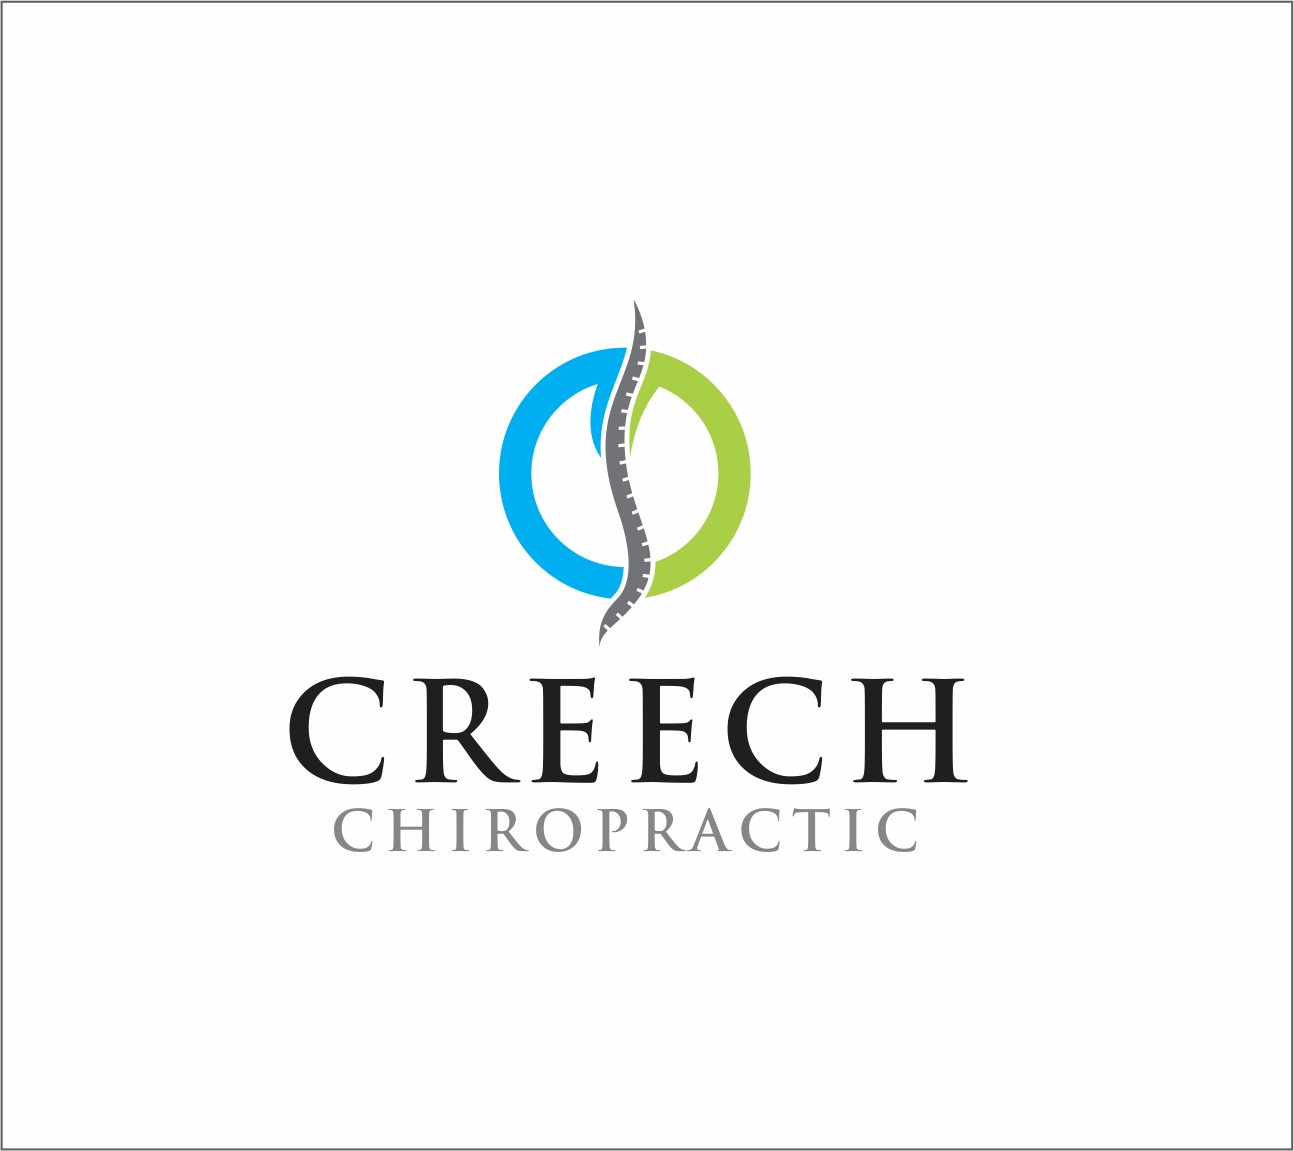 Logo Design by Armada Jamaluddin - Entry No. 59 in the Logo Design Contest Imaginative Logo Design for Creech Chiropractic.